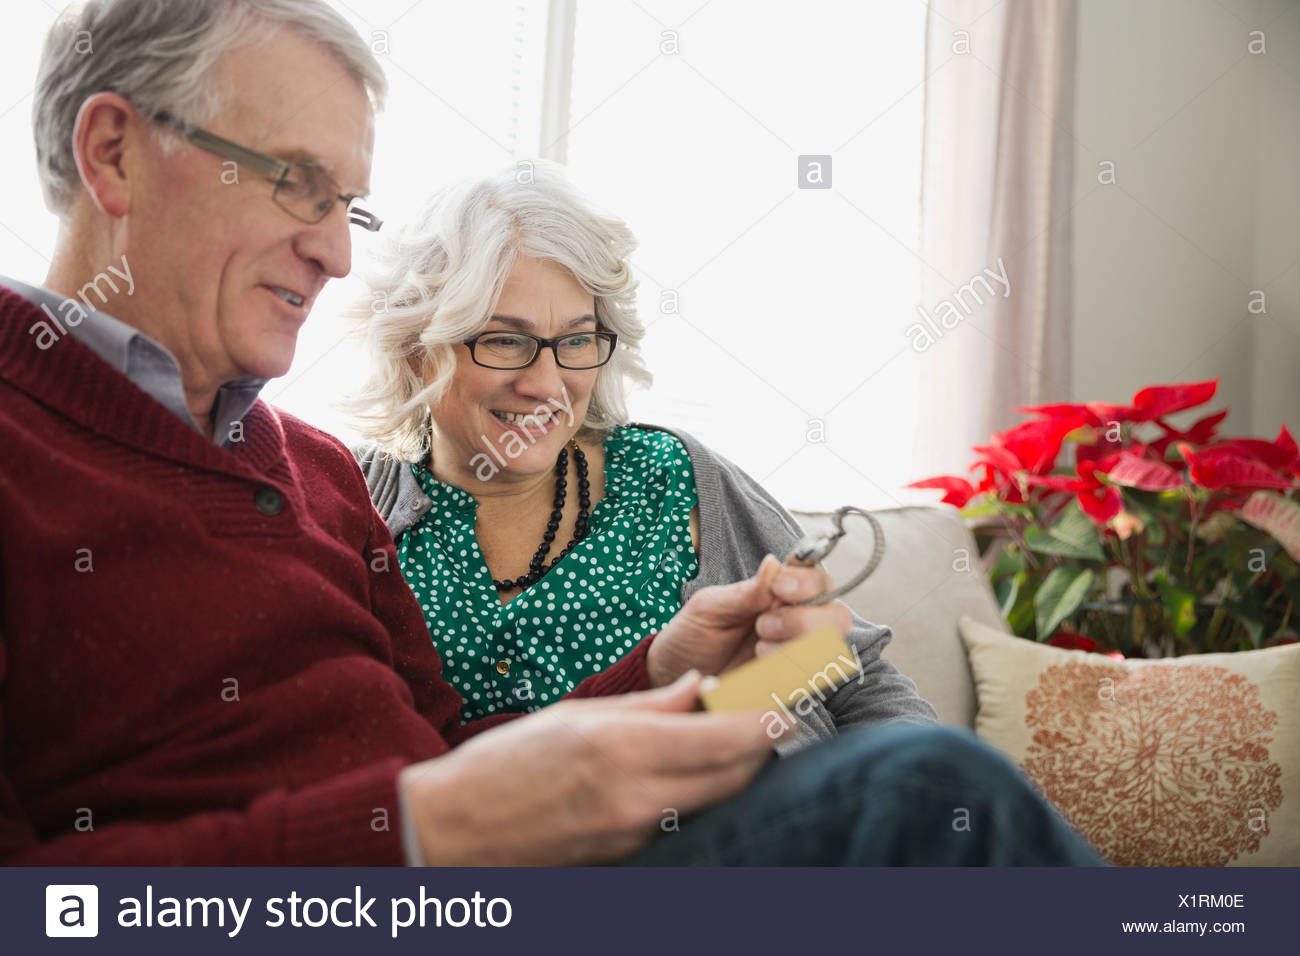 Senior man opening Christmas gift with wife - Stock Image